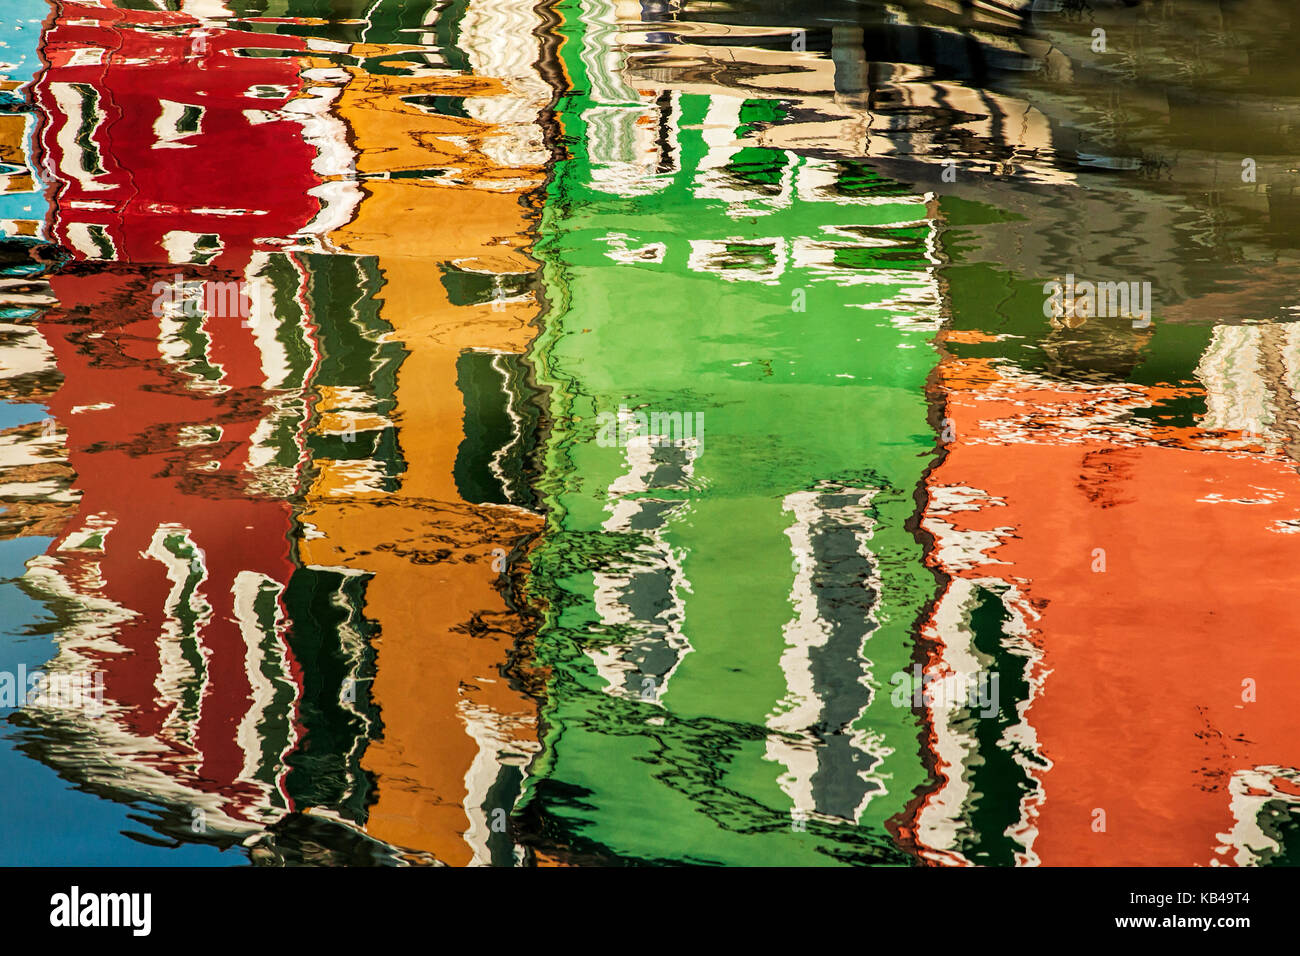 Colorful houses of Burano, Italy reflecting off the water - Stock Image